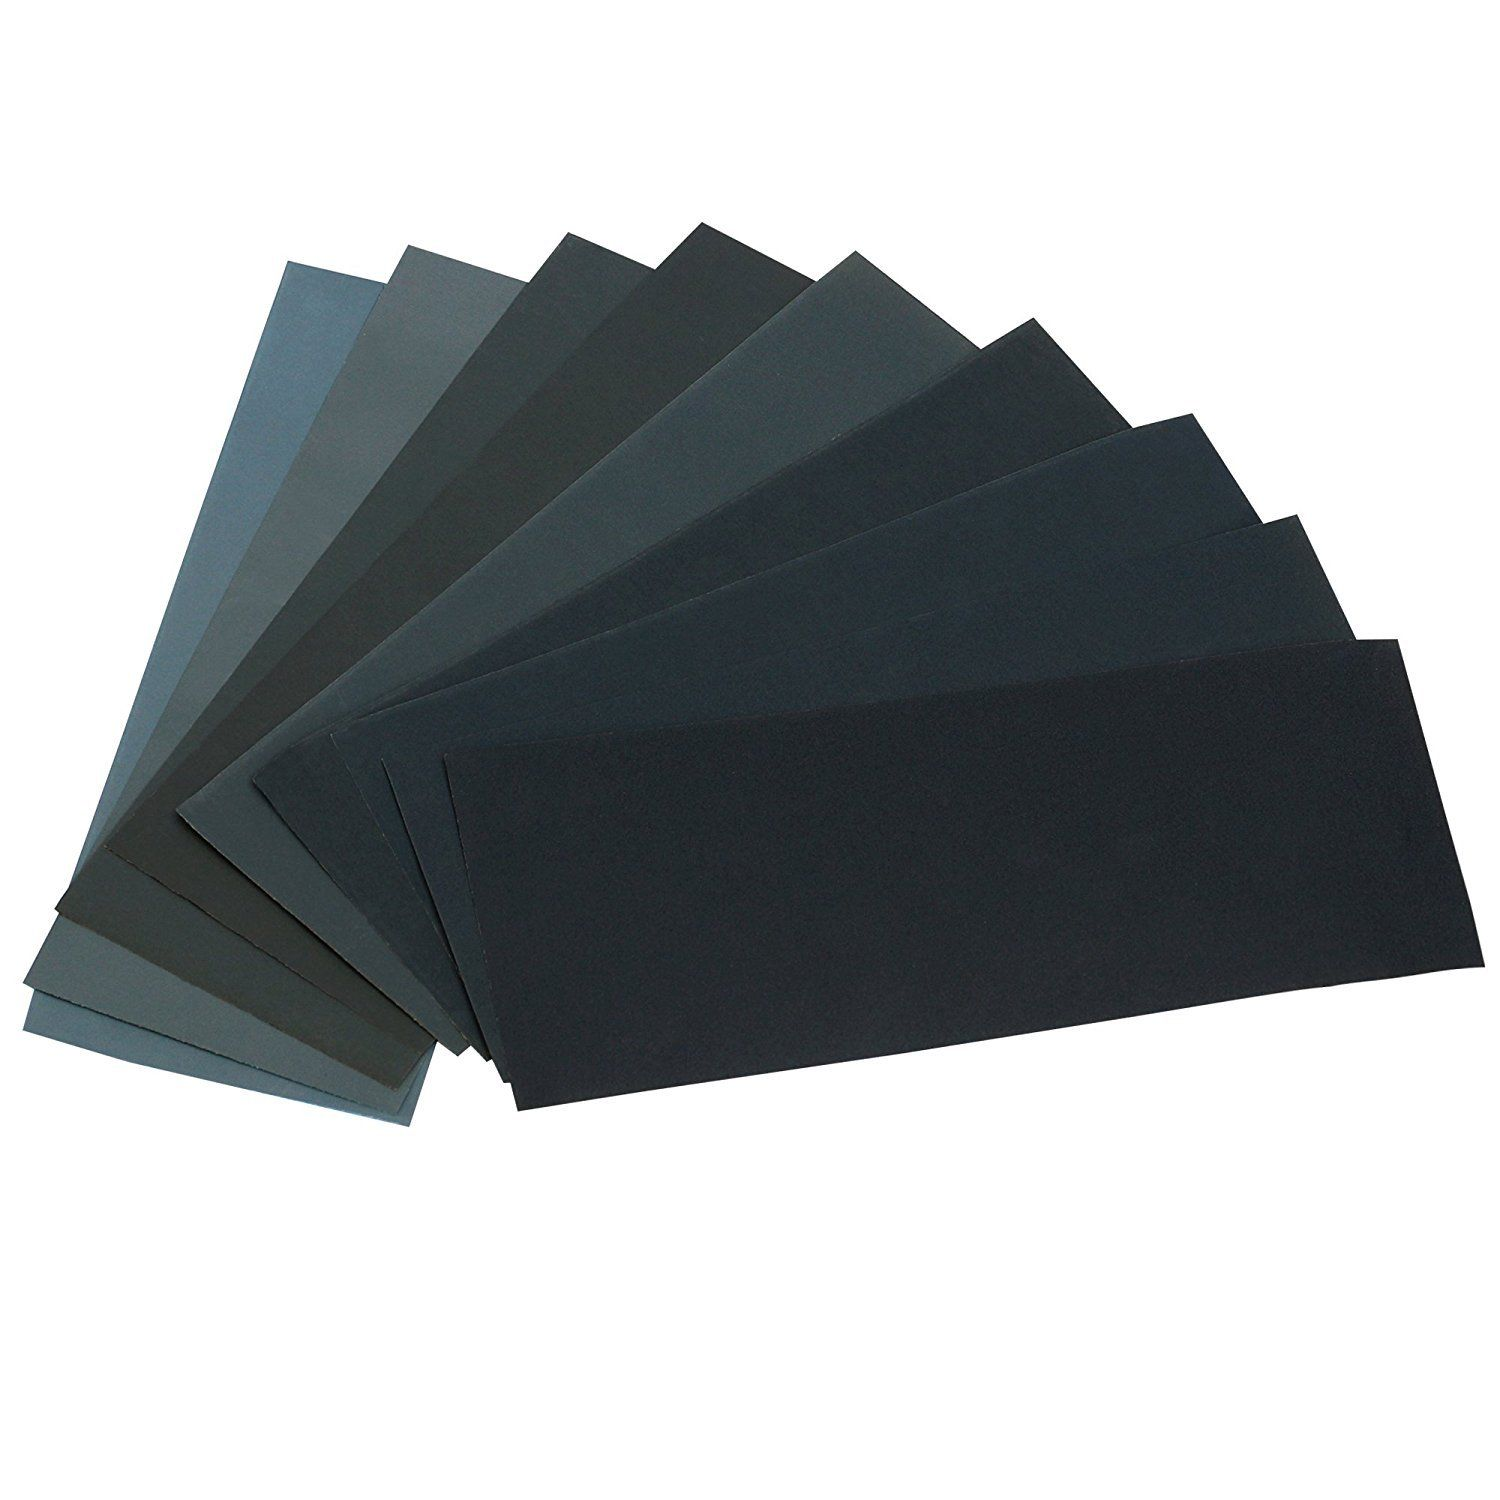 Gimars 36pcs 400 to 3000 Grit Wet Dry Waterproof Sandpaper Assortment 9 x 3.6 in Abrasive Sandpaper Sheets for Auto Sanding, Wood Furniture Finishing and Polishing